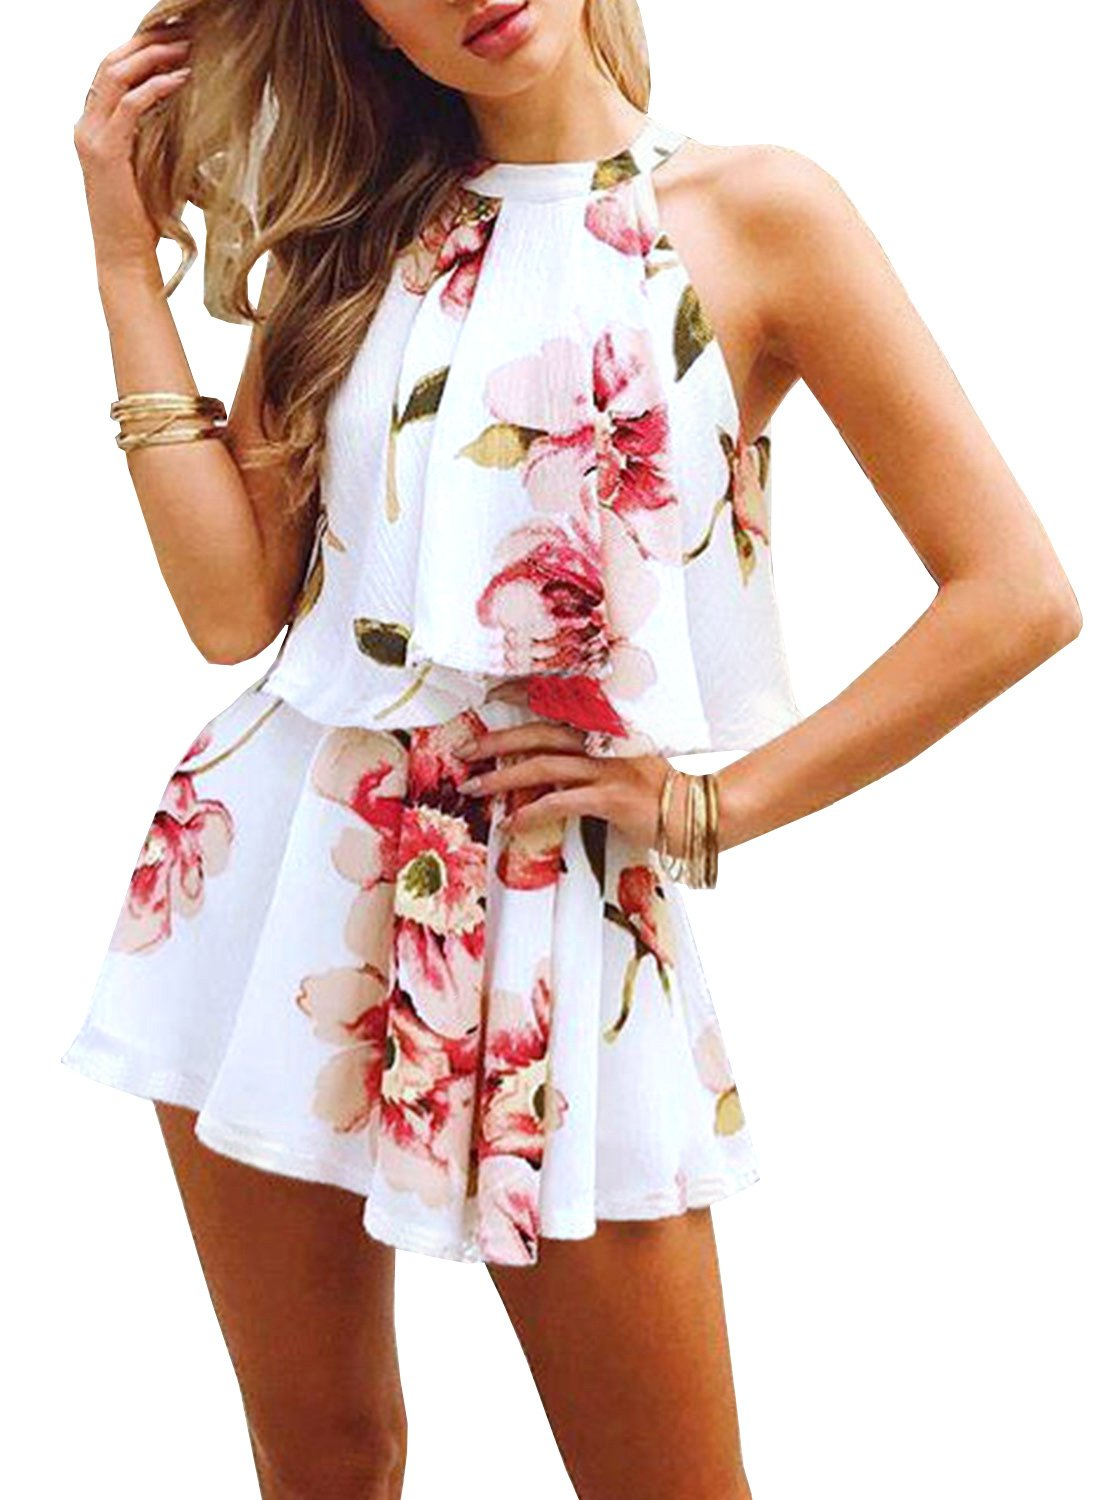 Futurino Women's Floral Print See Through Two Piece Beachwear Outfit Set ONY0705-CA